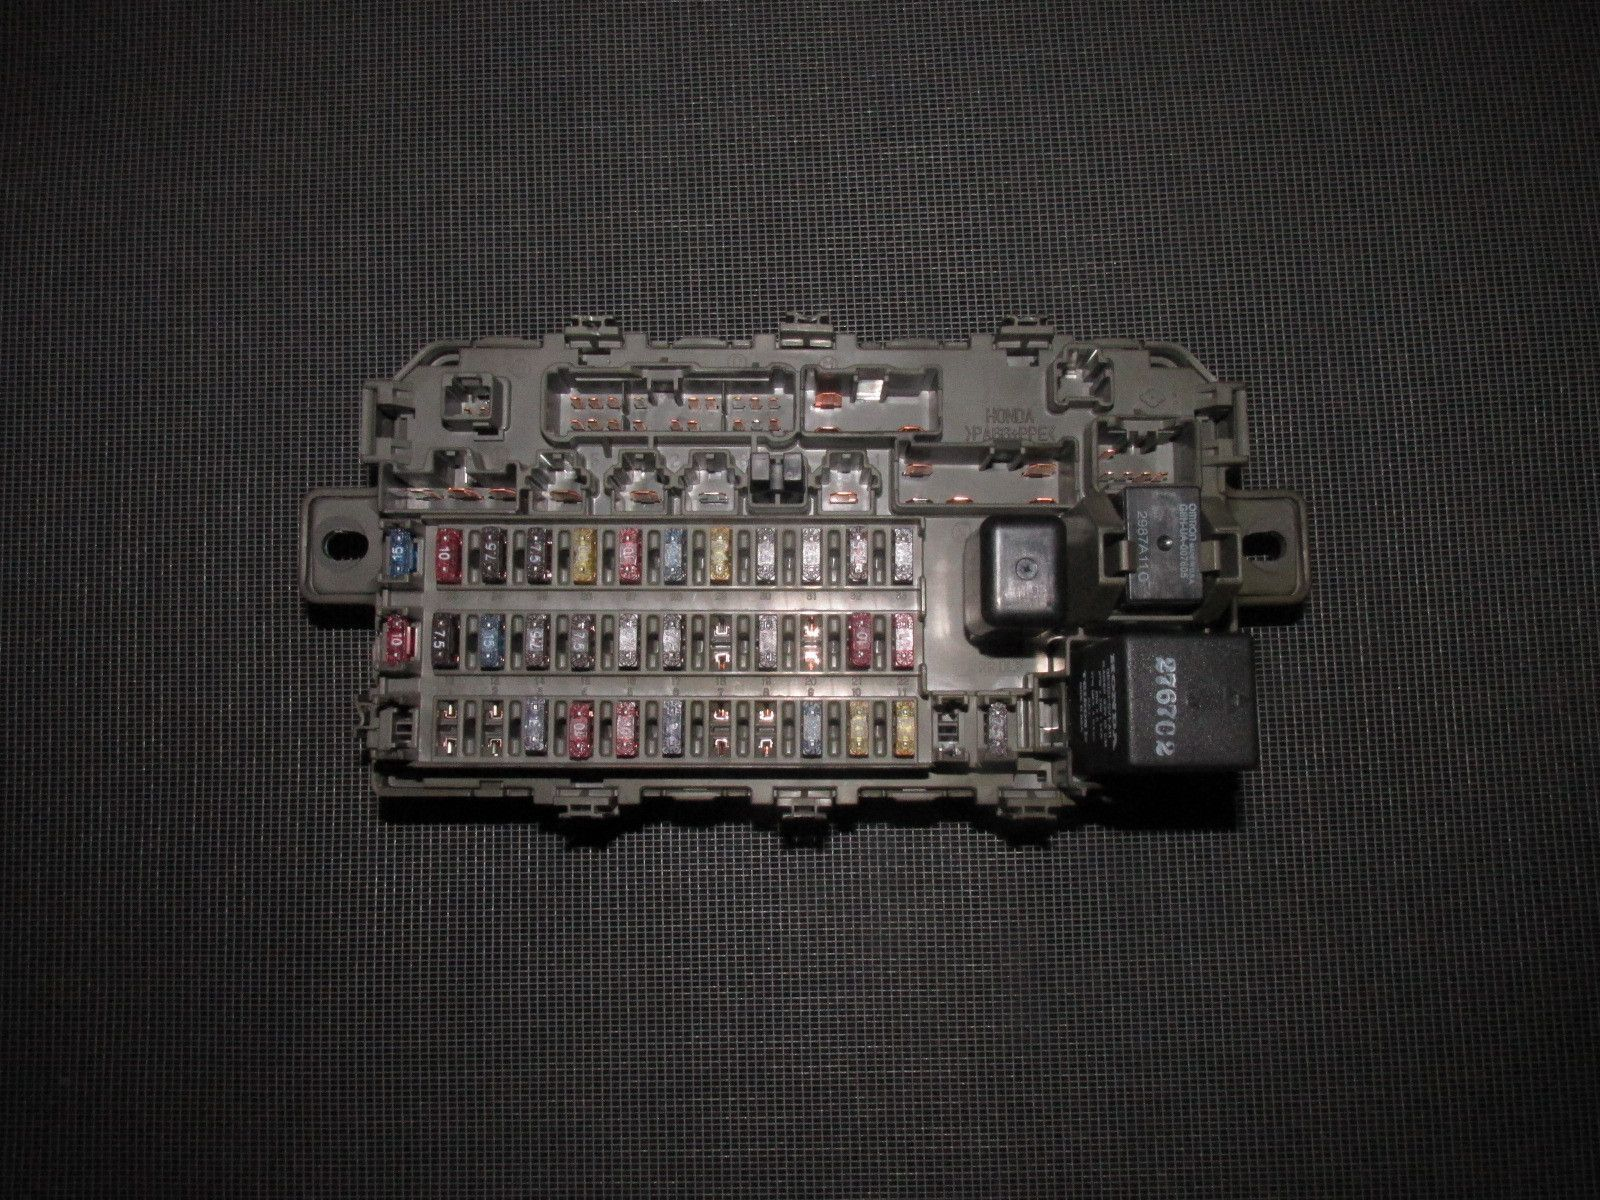 98 Civic Fuse Box Wiring Library Interior 95 Grand Marquid 96 97 99 00 Honda Oem